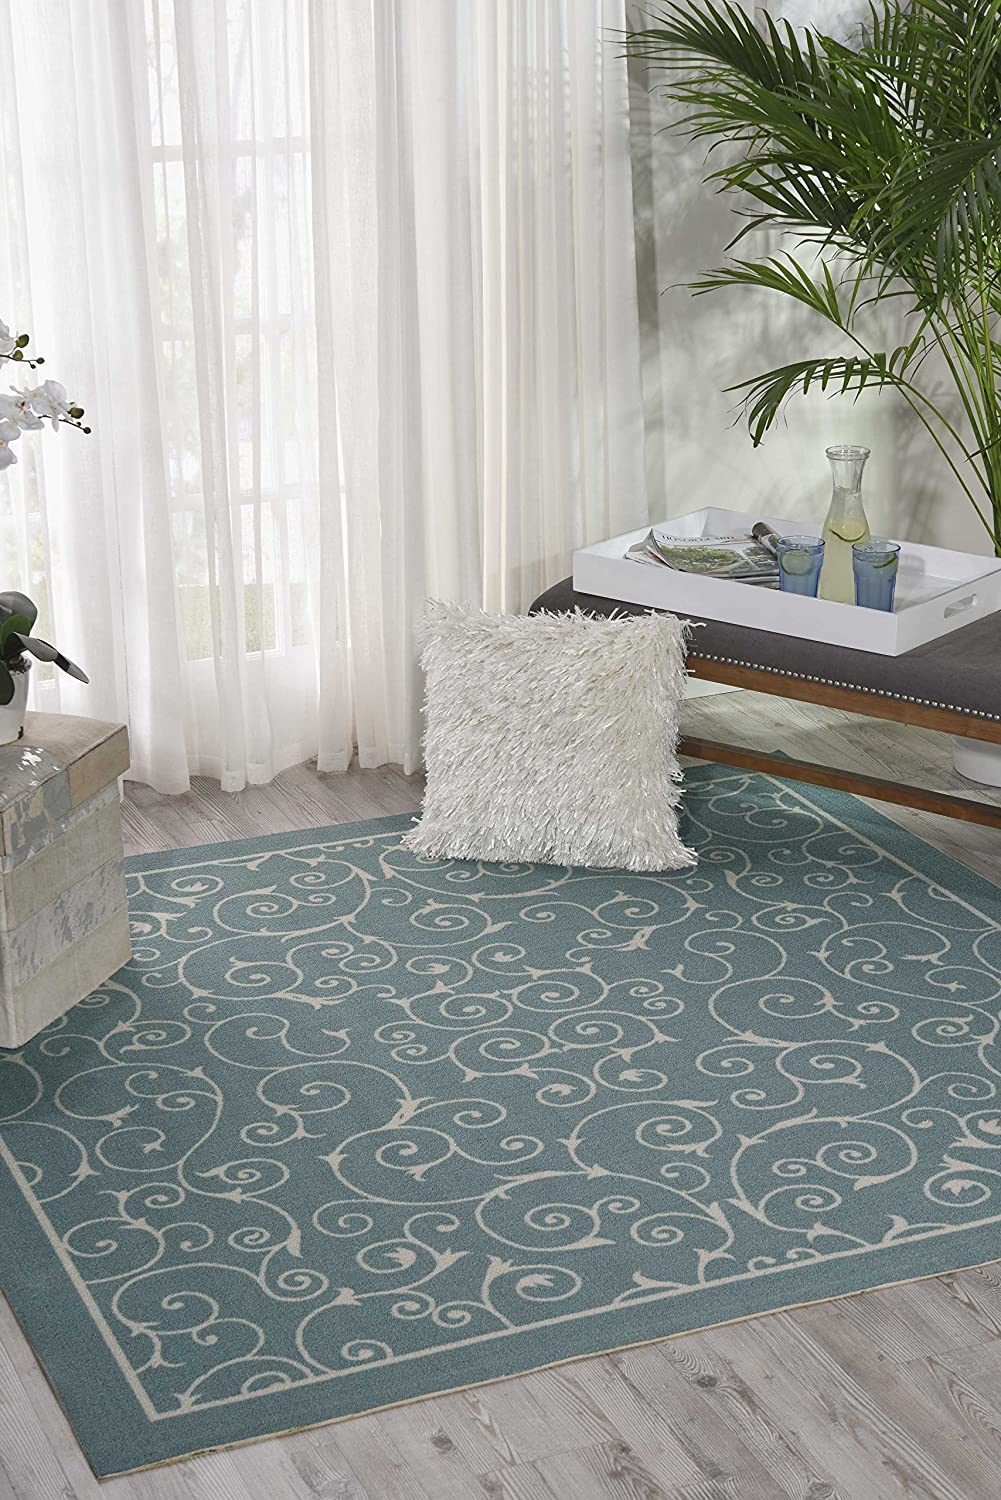 Nourison Home & Garden Light Blue Indoor/Outdoor Area Rug 6 Feet 6 Inches by 6 Feet 6 Inches, 6'6